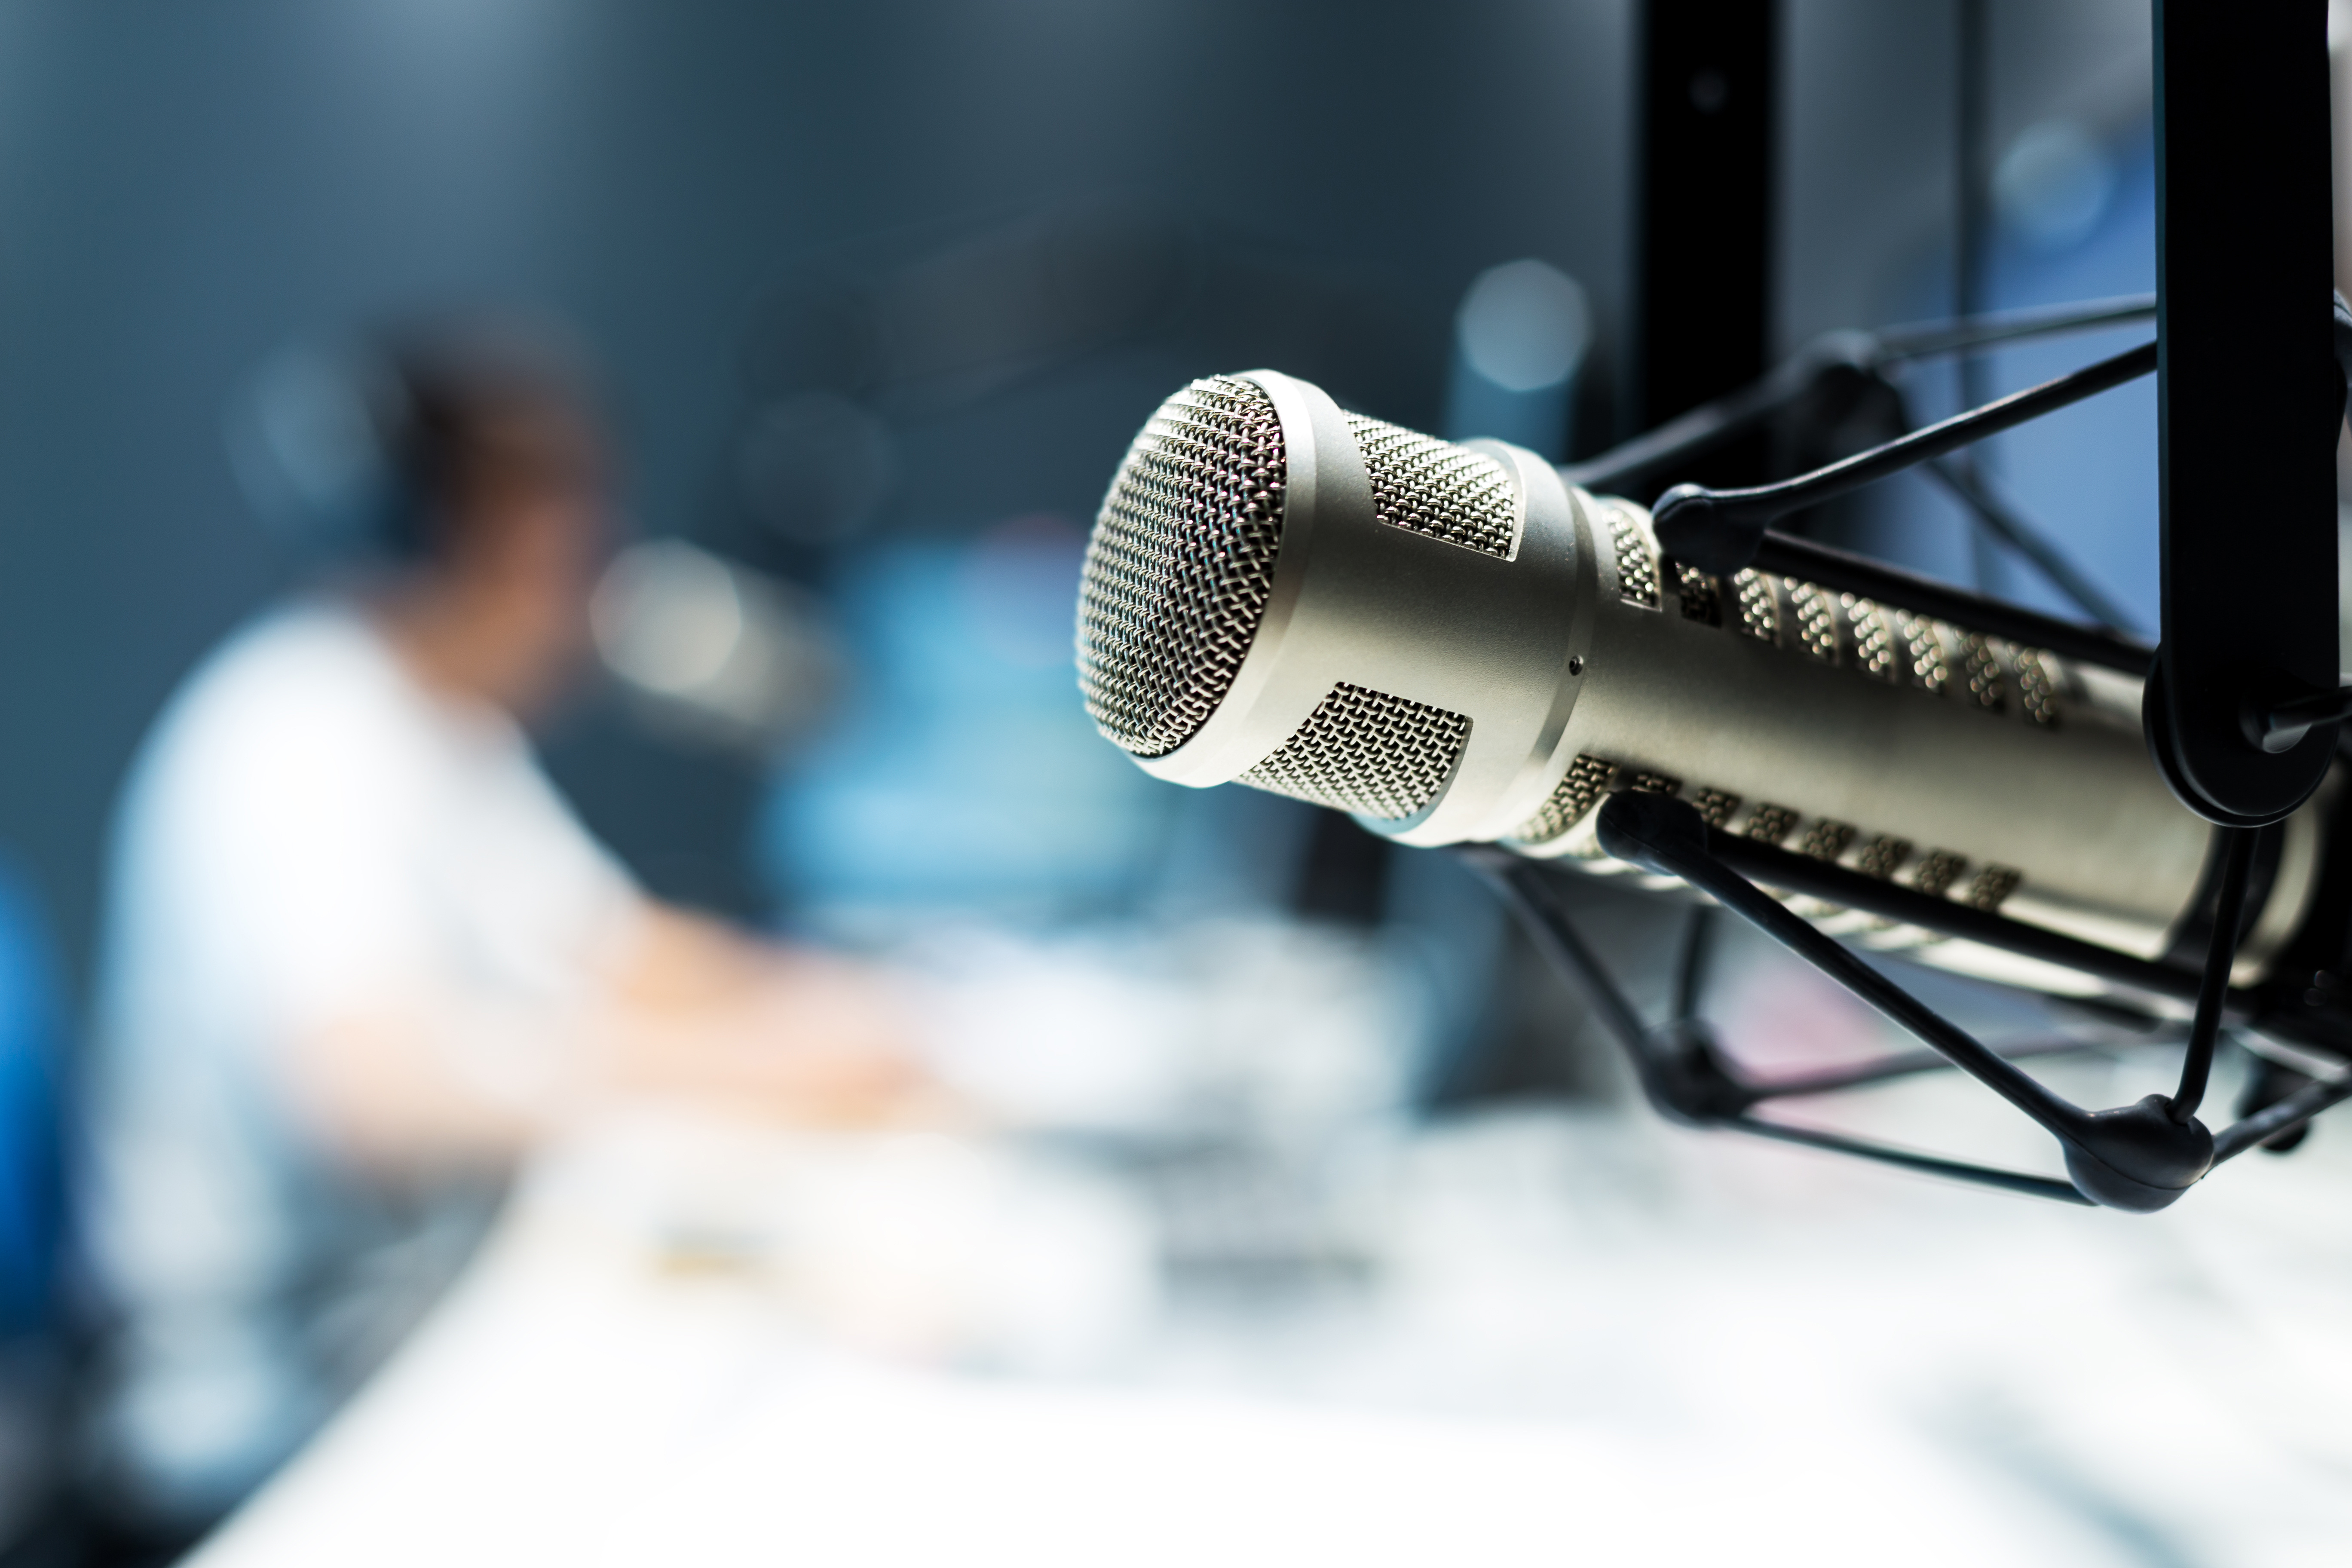 Sawa Radio moves to an all-news format